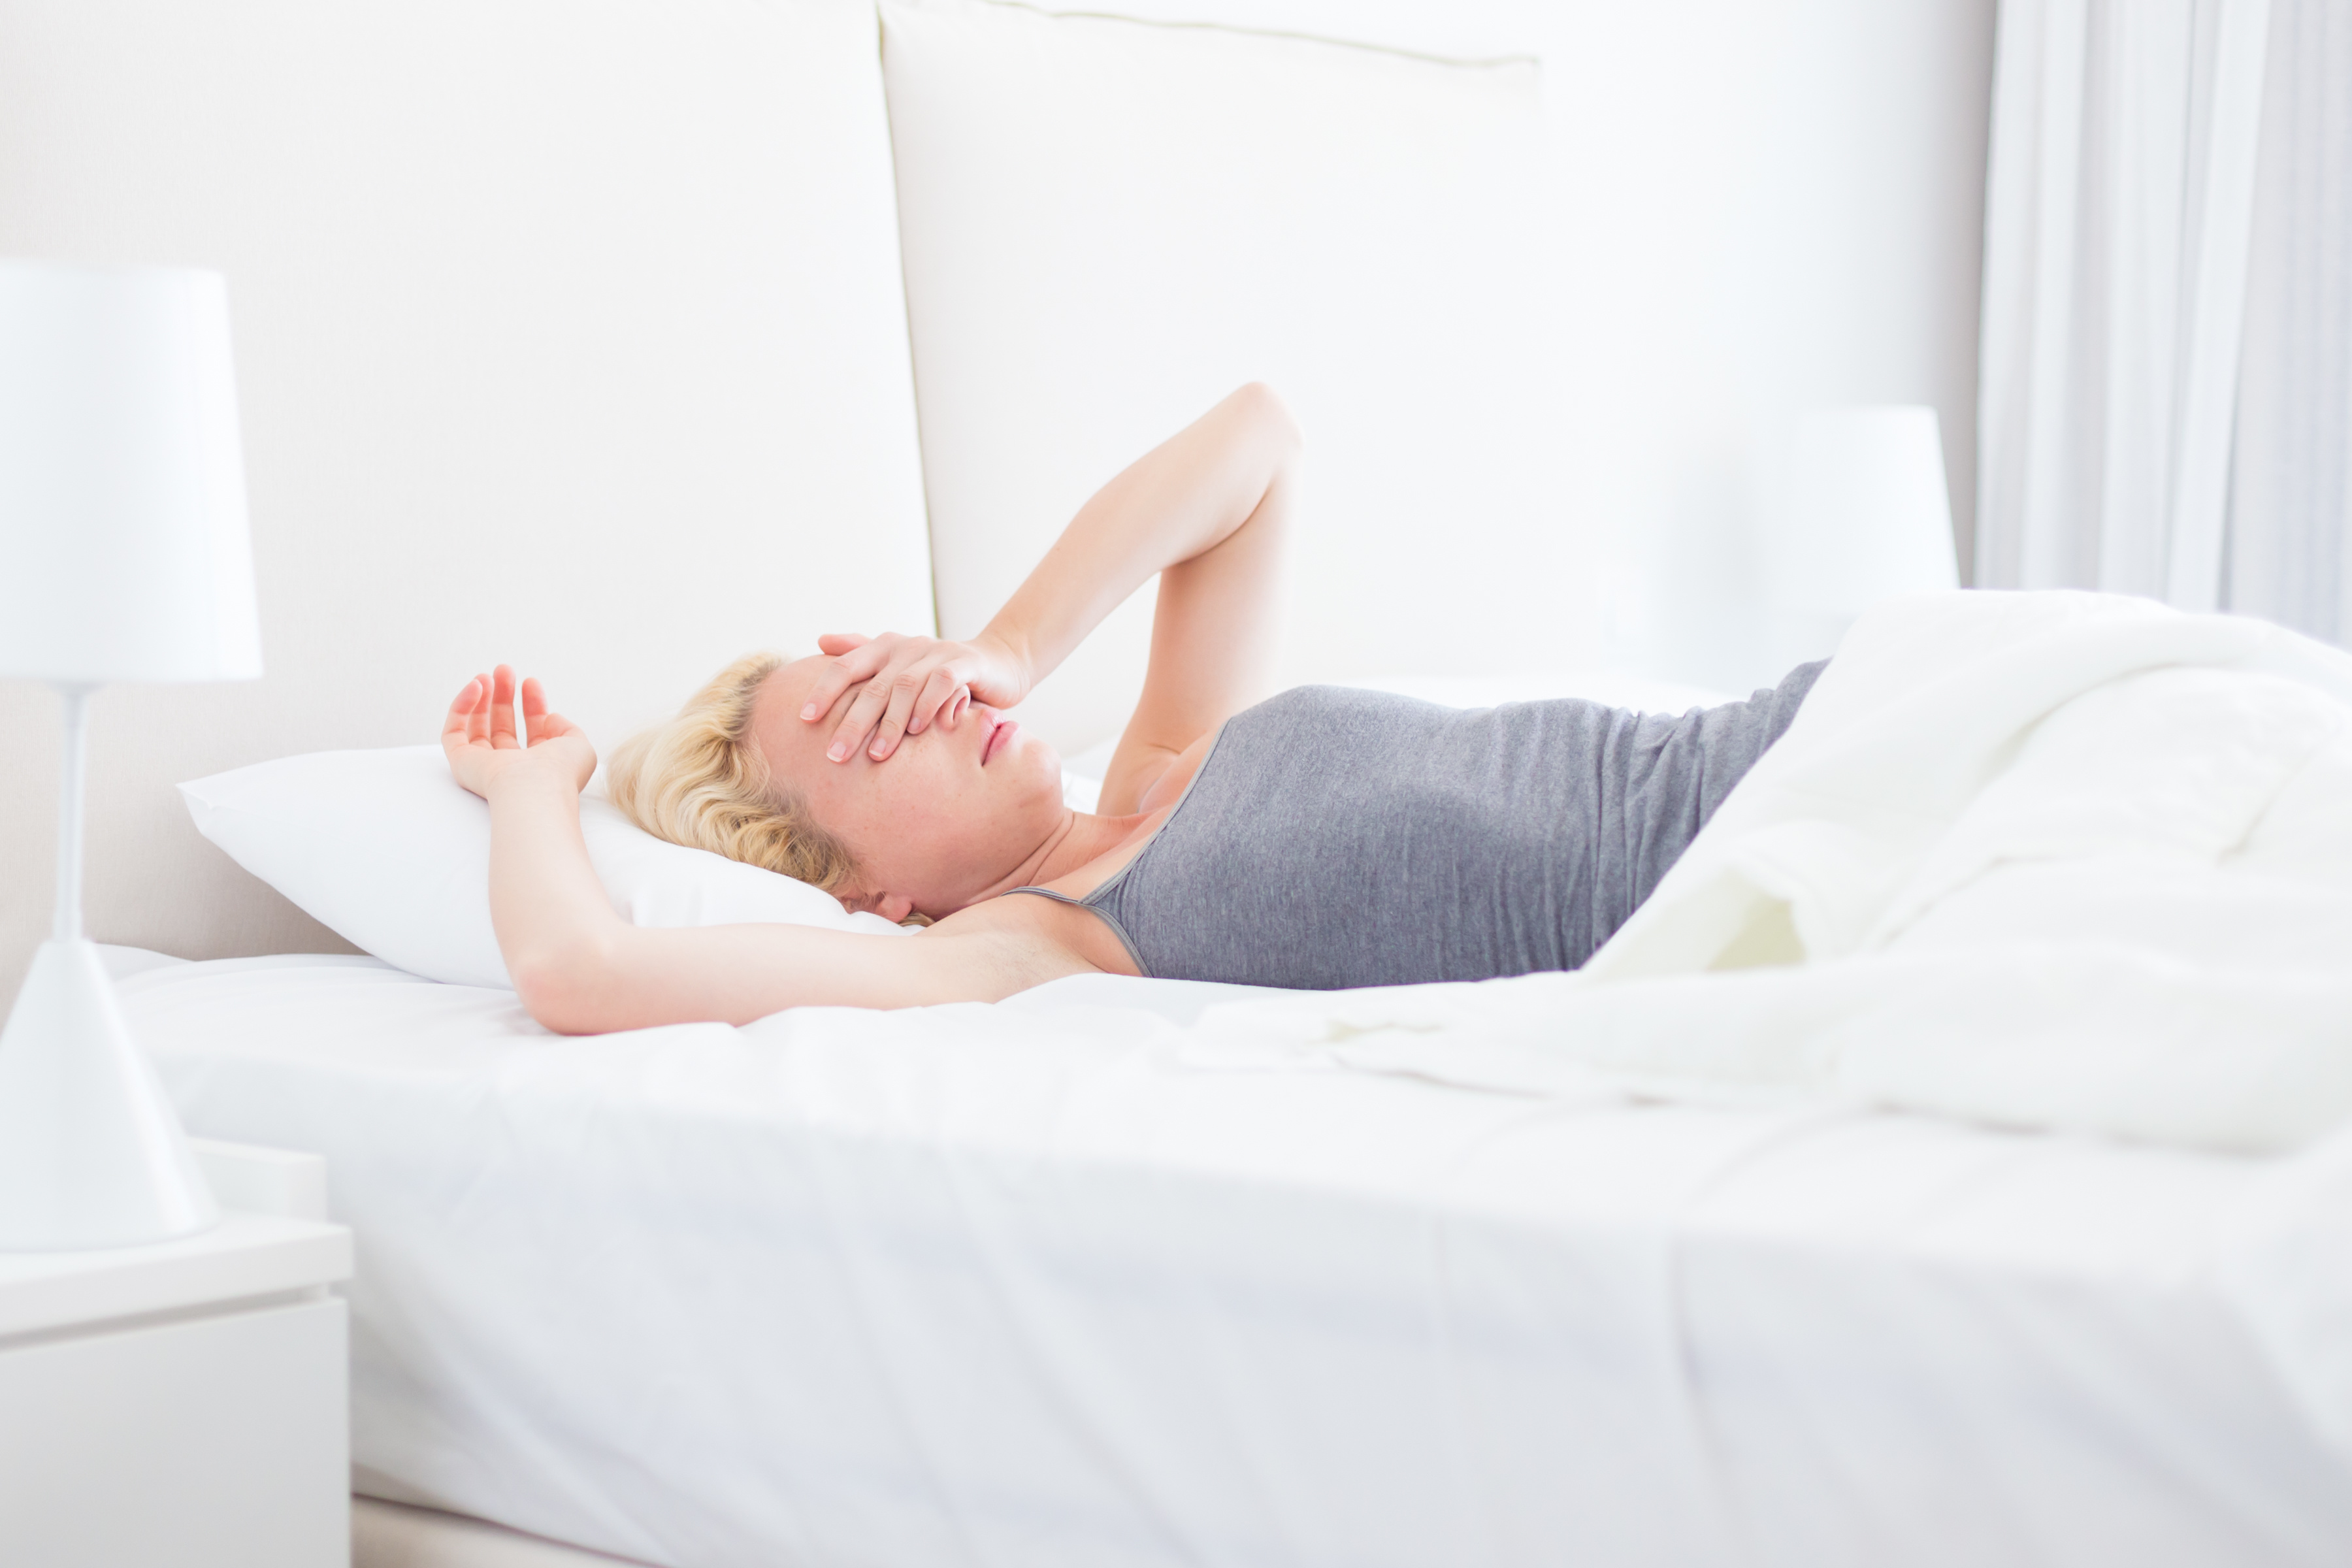 The ideal temperature for a good night's sleep